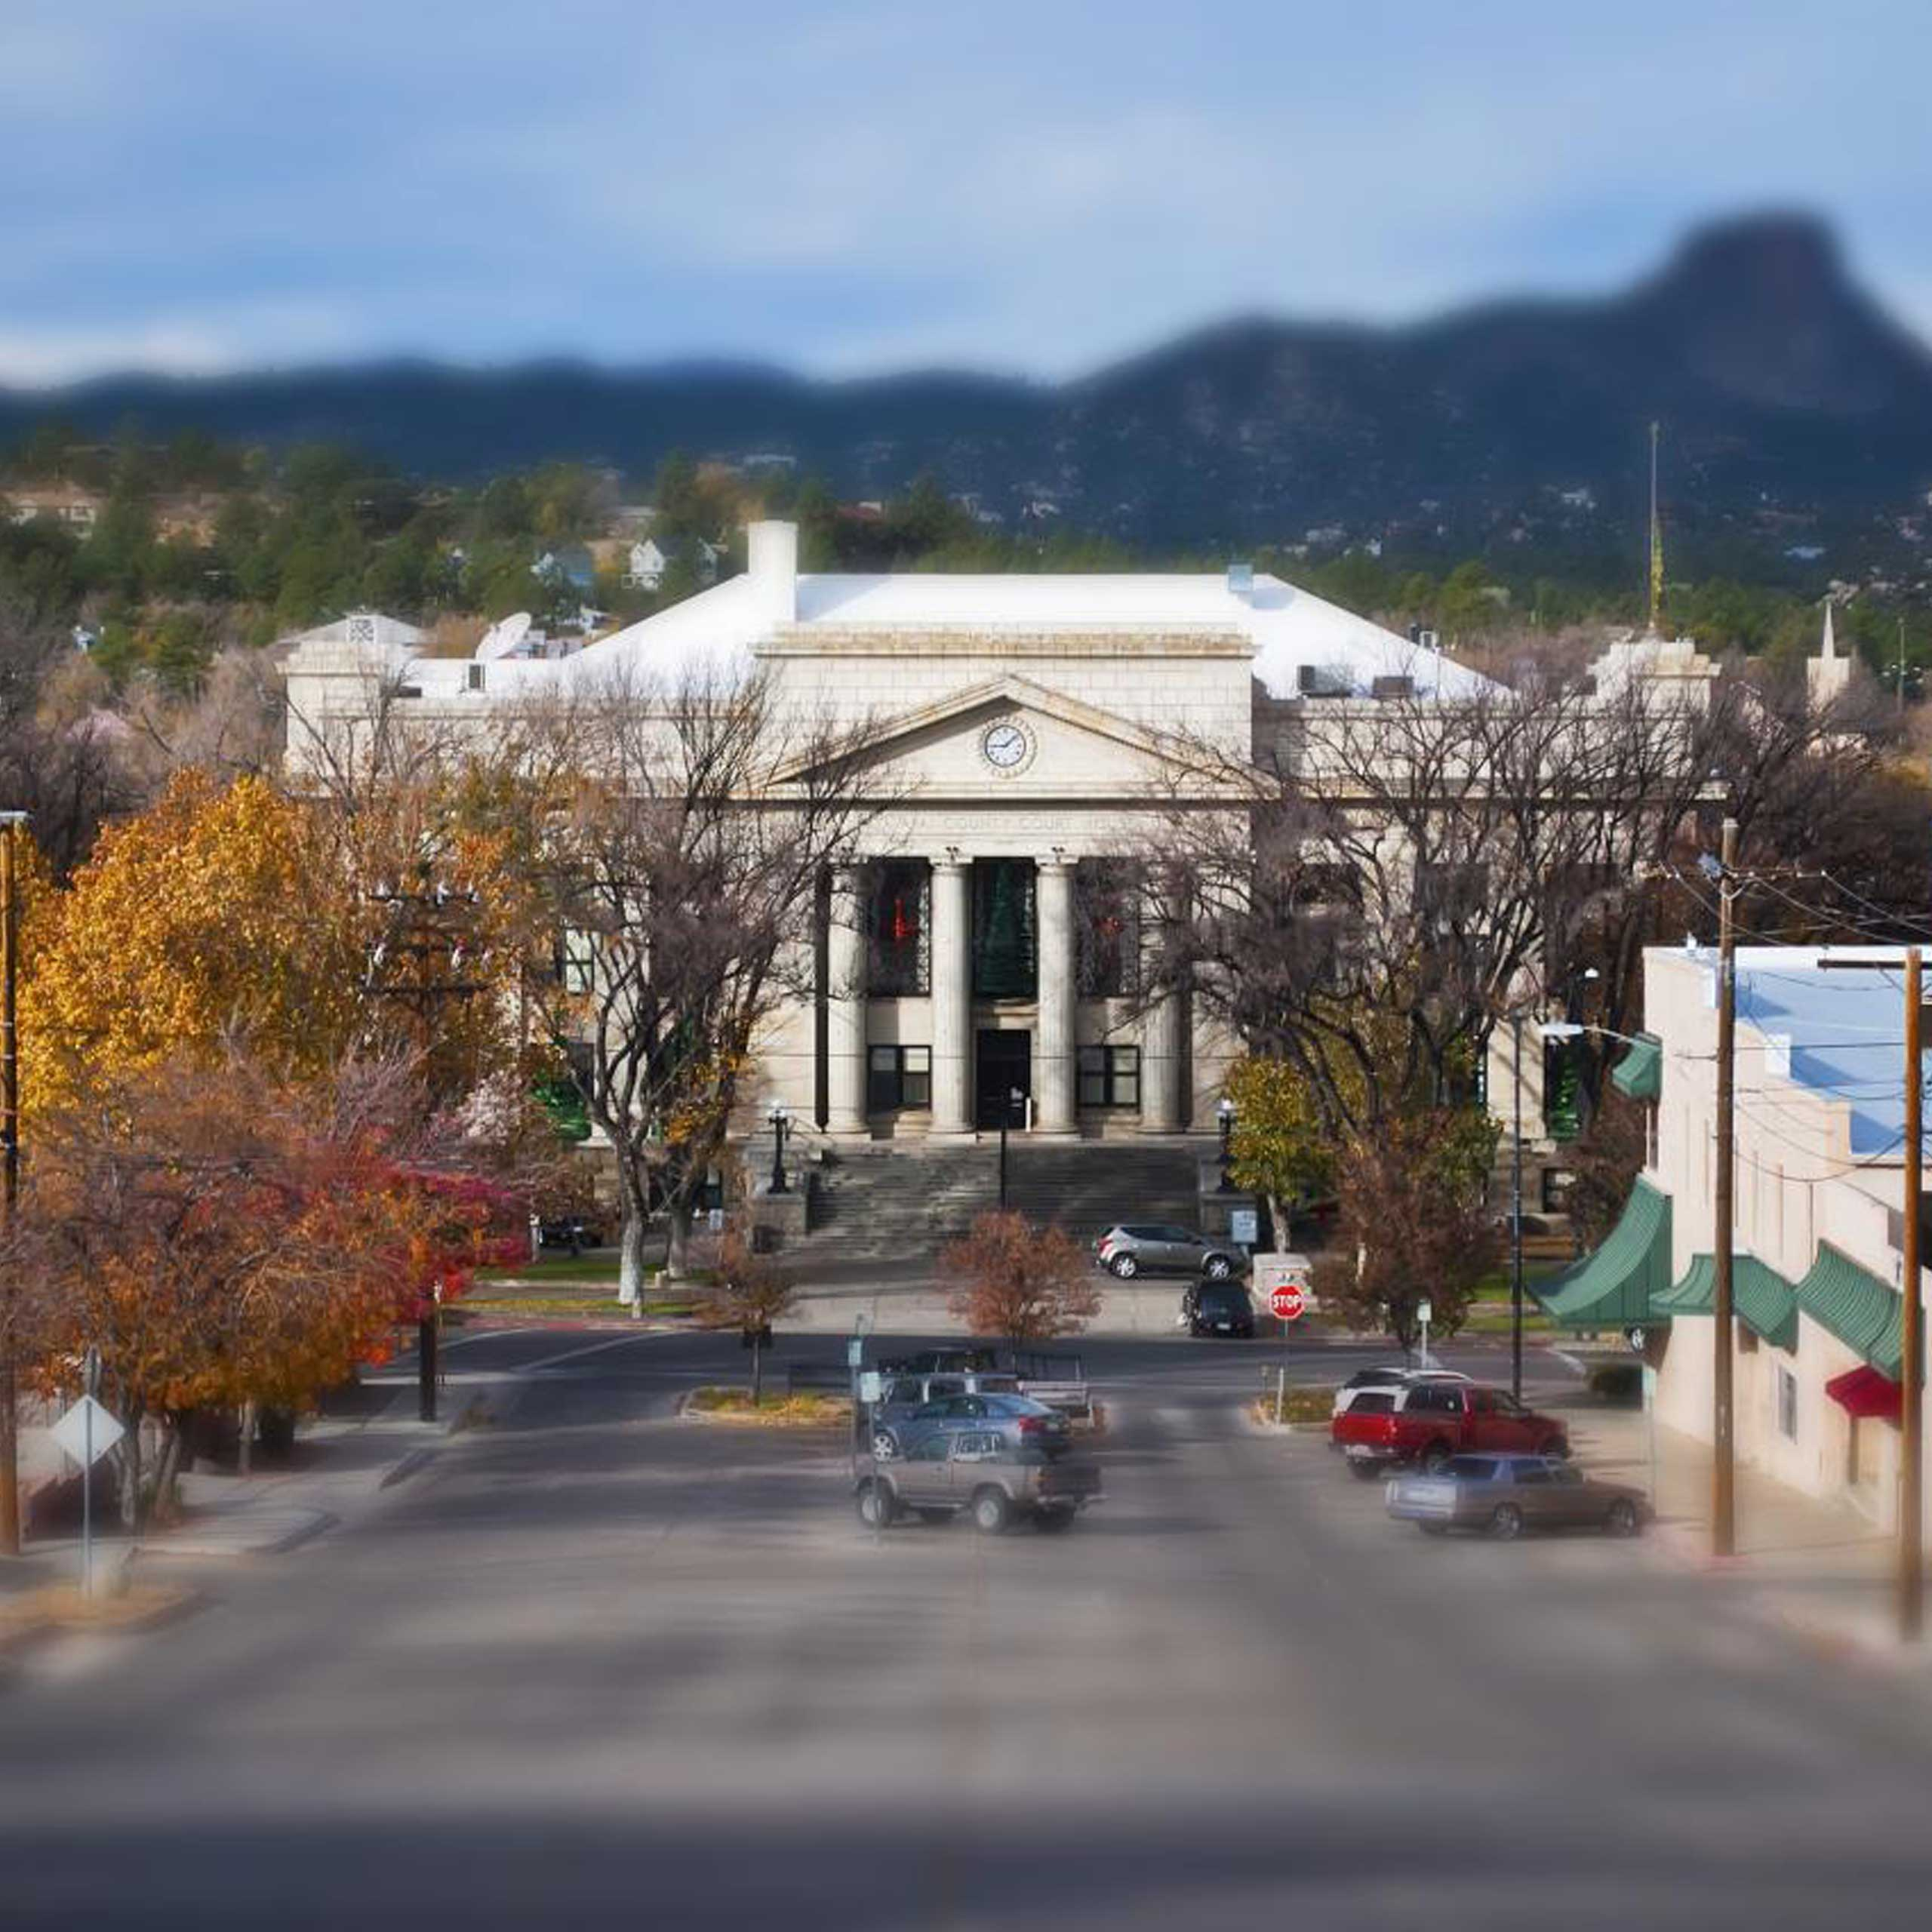 Take a 90-minute walking tour in Historic Downtown Prescott Fridays – Sundays in May and learn more about Prescott's history and present.